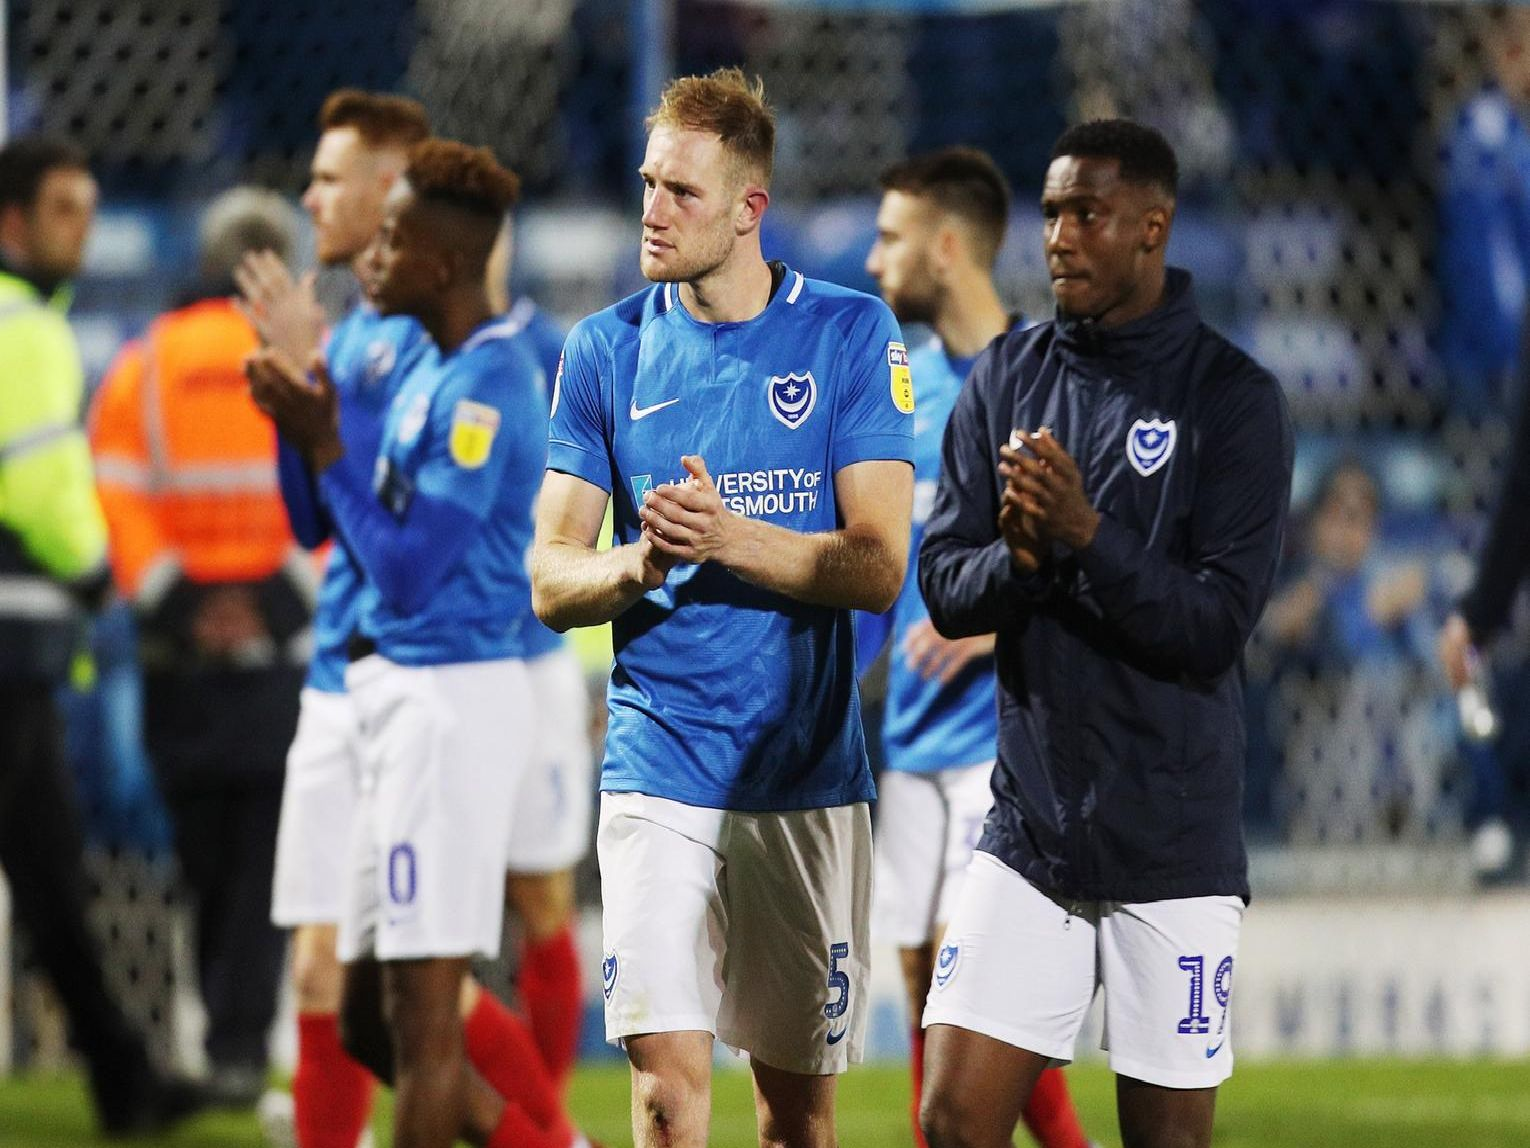 Pompey dejected after crashing out of the play-offs to Sunderland. Picture: Joe Pepler